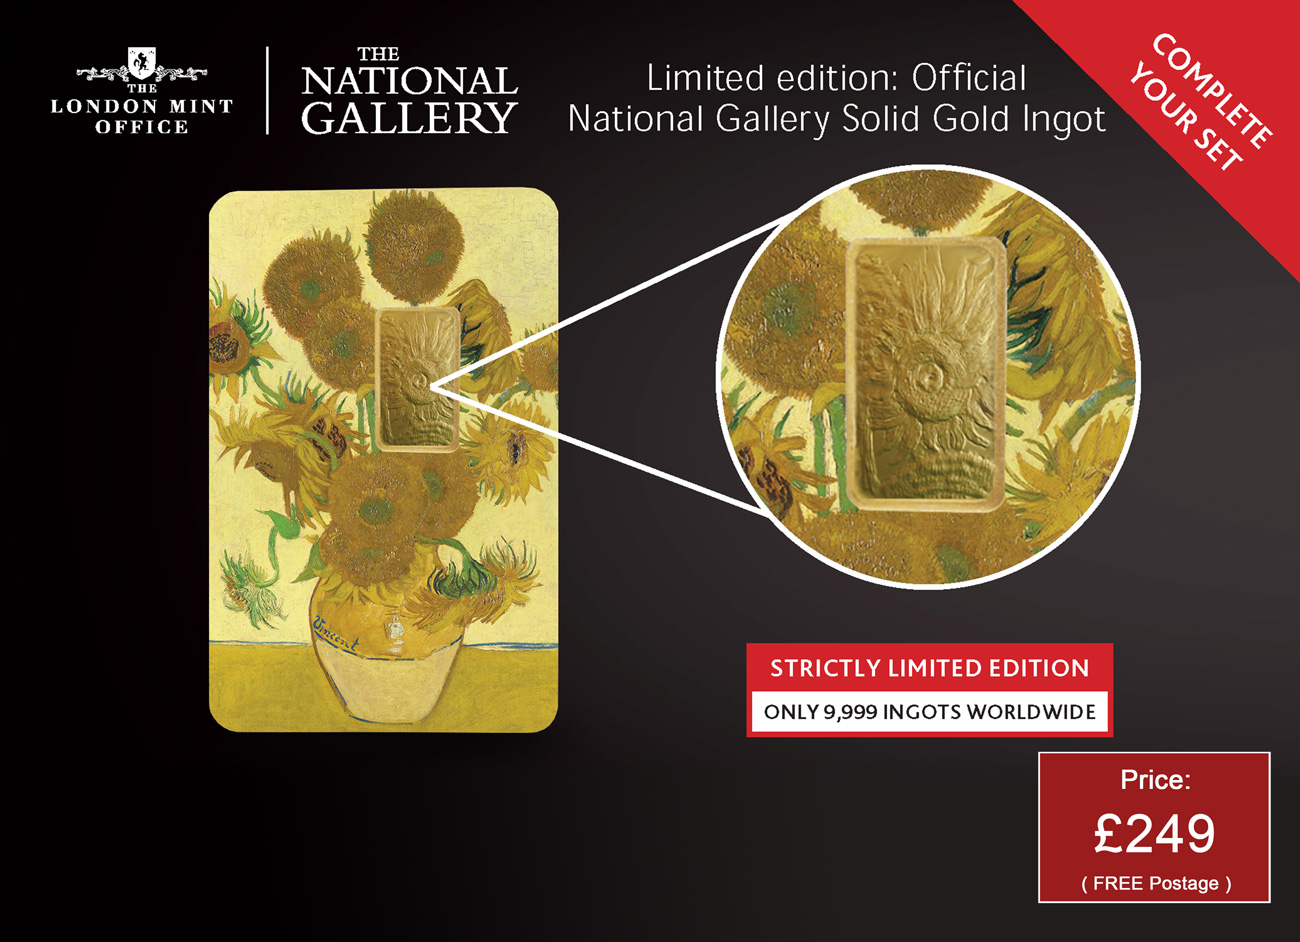 National Gallery Solid Gold Ingot